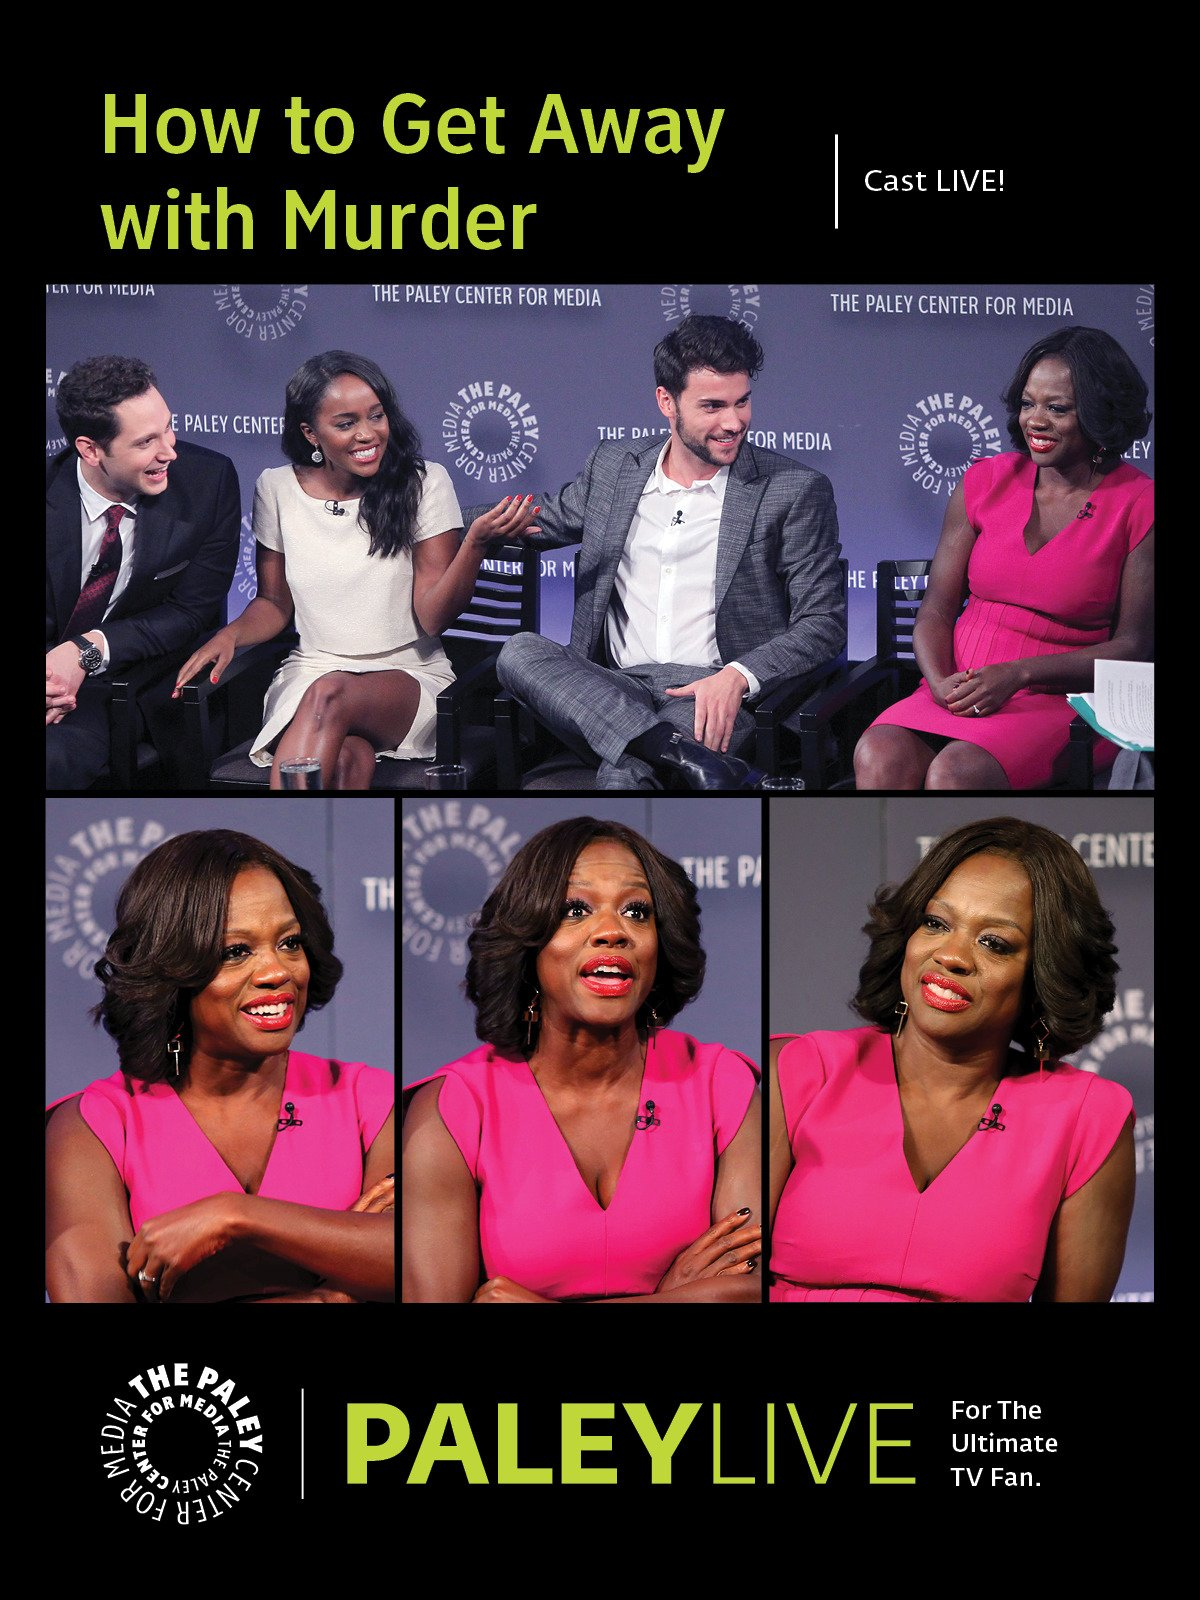 How to Get Away with Murder: The Cast at PaleyLive NY